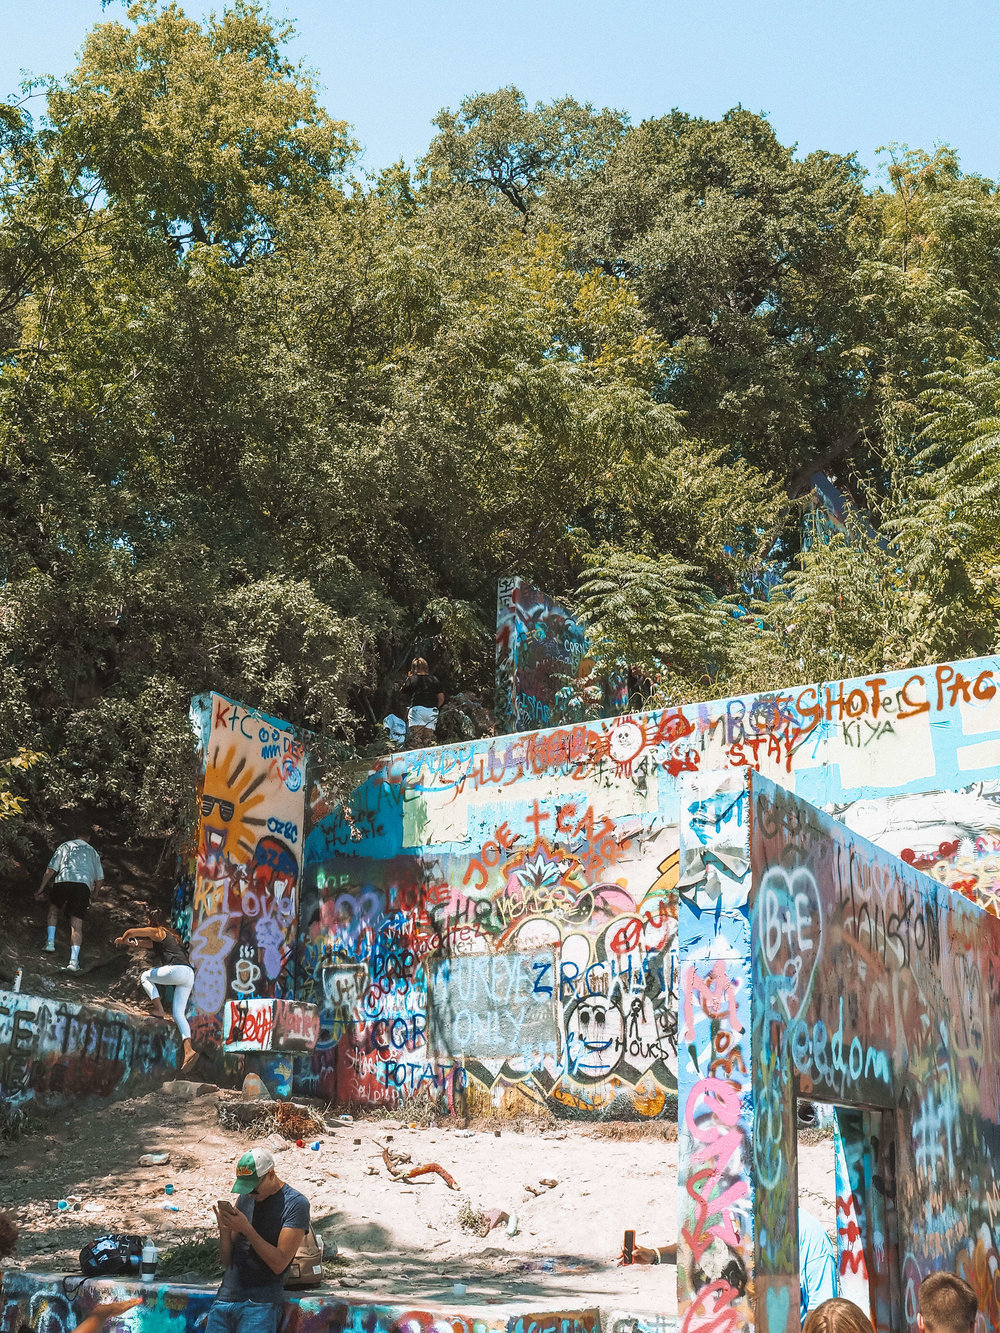 """There's a reason why people want to """"Keep Austin Weird"""". The city of Austin, Texas is an eclectic mix of art, food, culture and fun. Plus there are so many outdoor activities right within the city limits! Plan your trip with the 6 things you cannot miss in Austin! #austin #texas #travel #cityguide"""